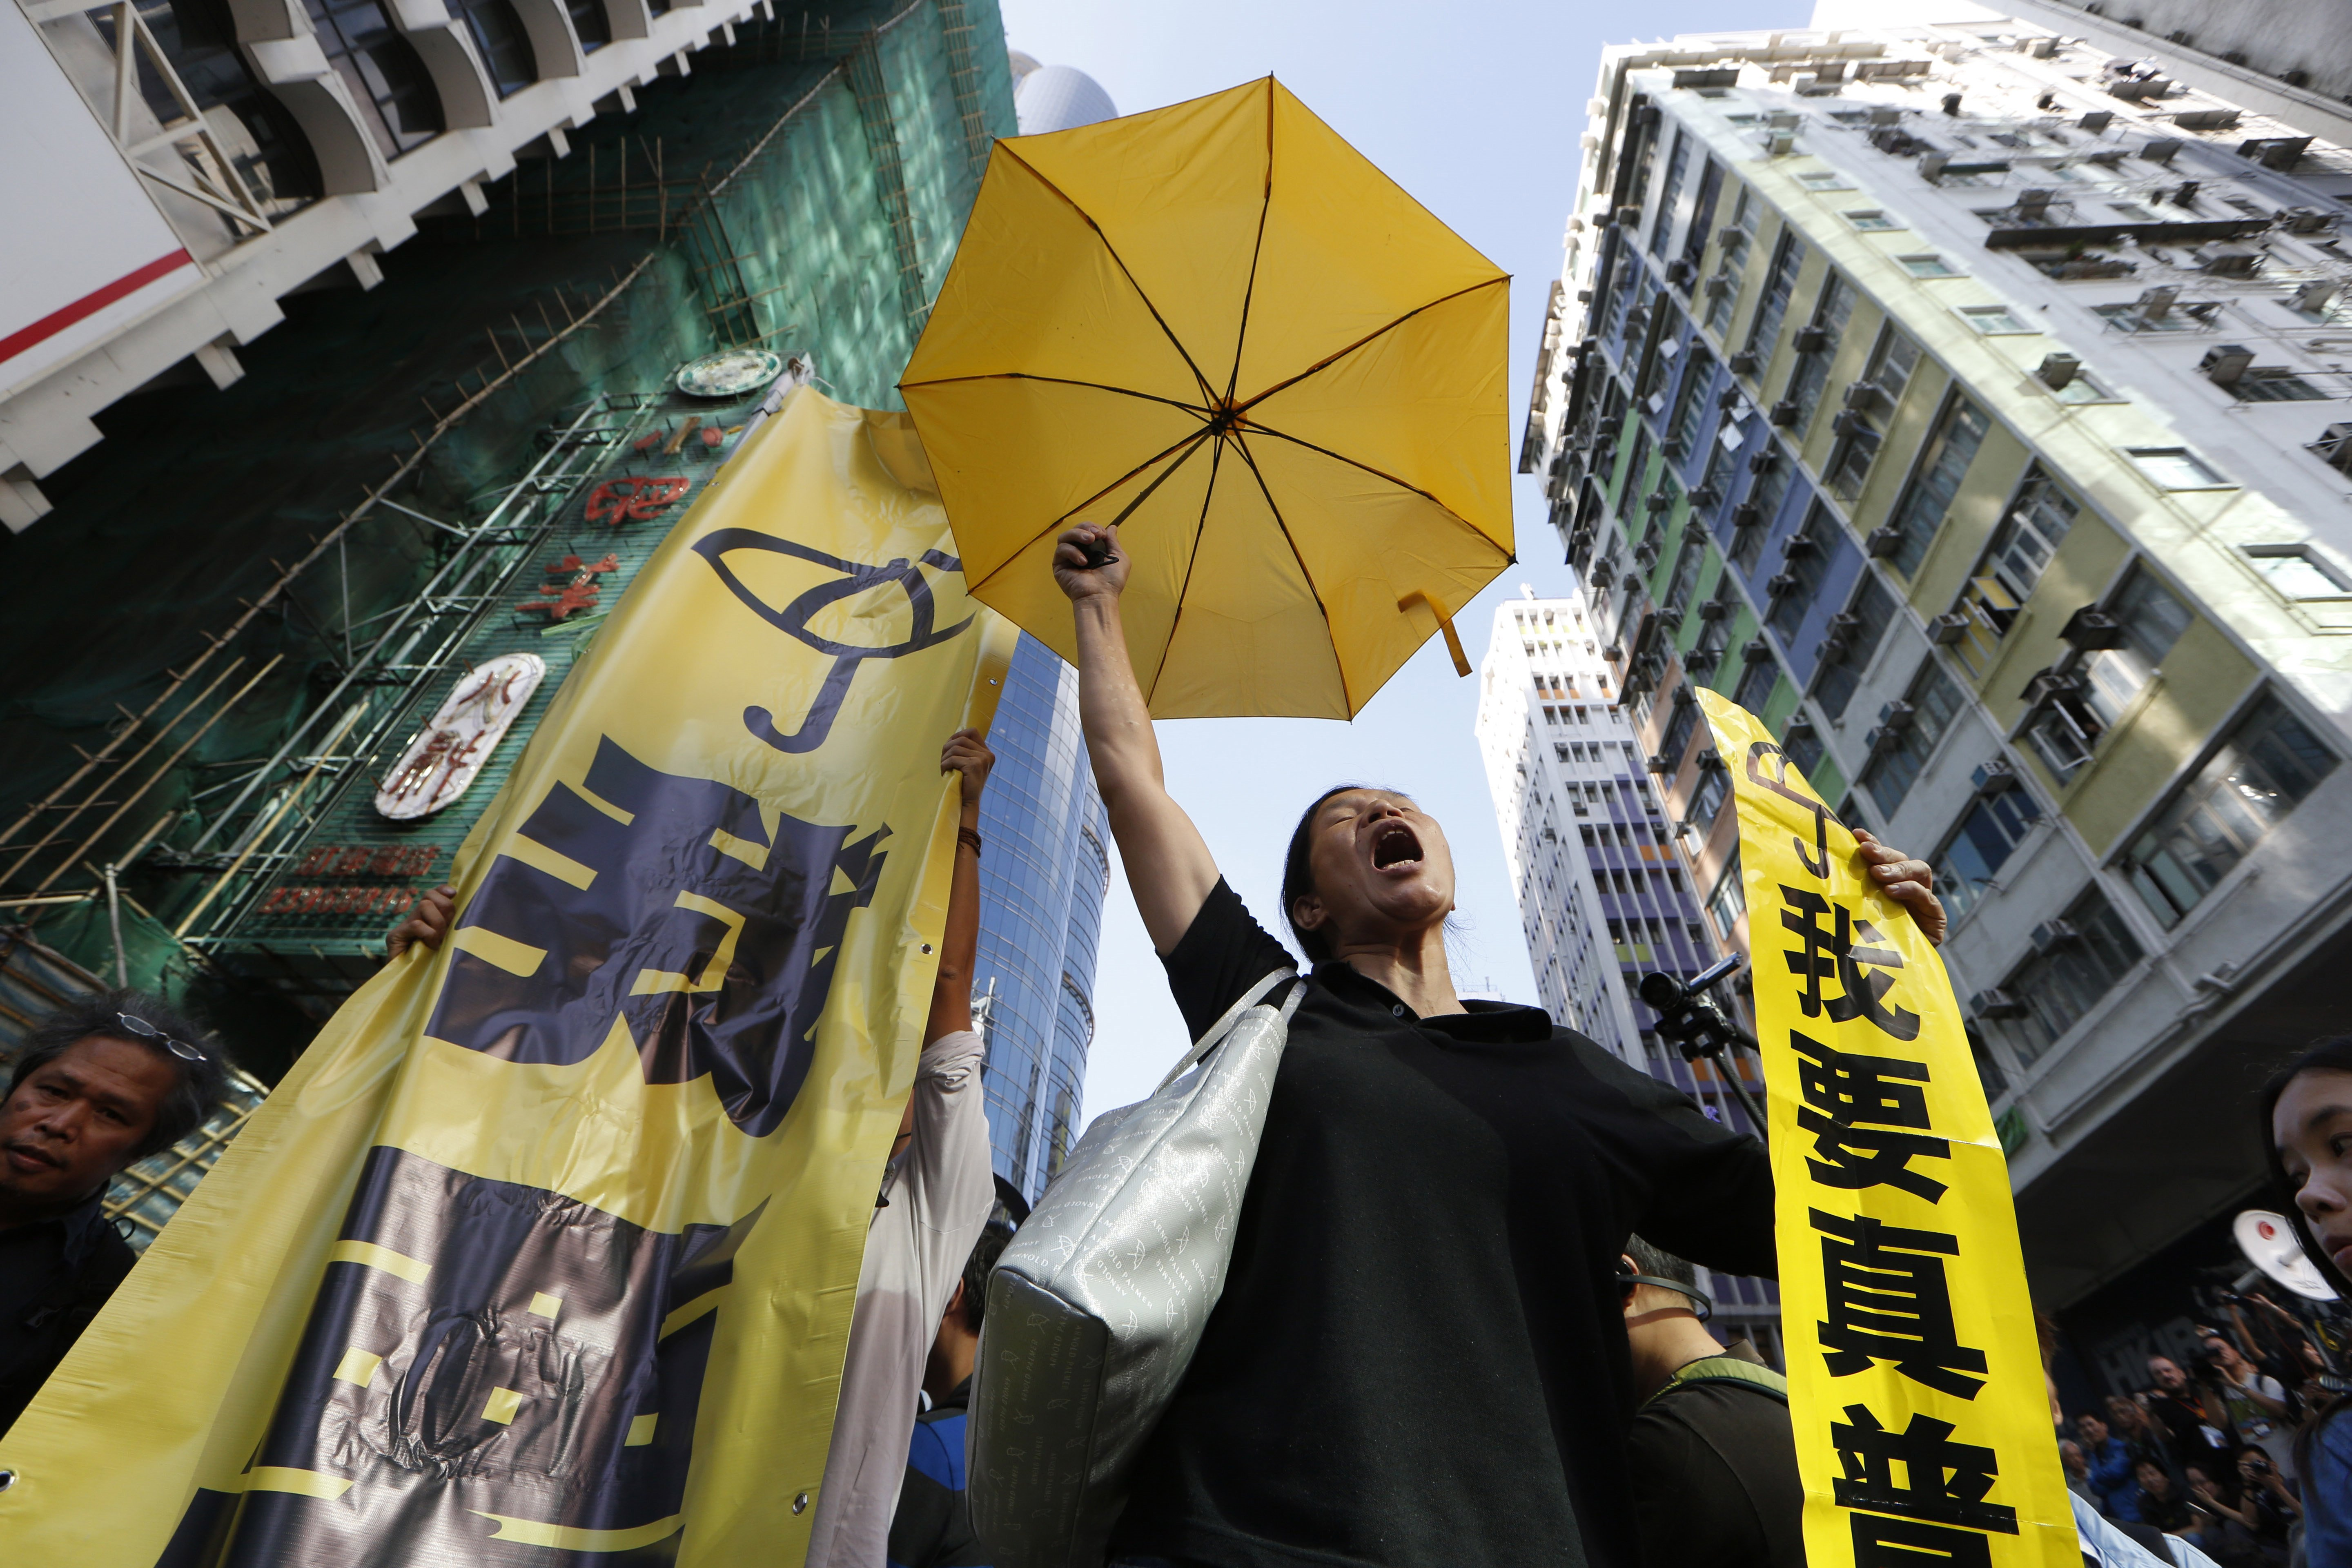 A pro-democracy protester chants at an occupied area before the barricade is removed in Mong Kok district of Hong Kong on Nov. 25, 2014